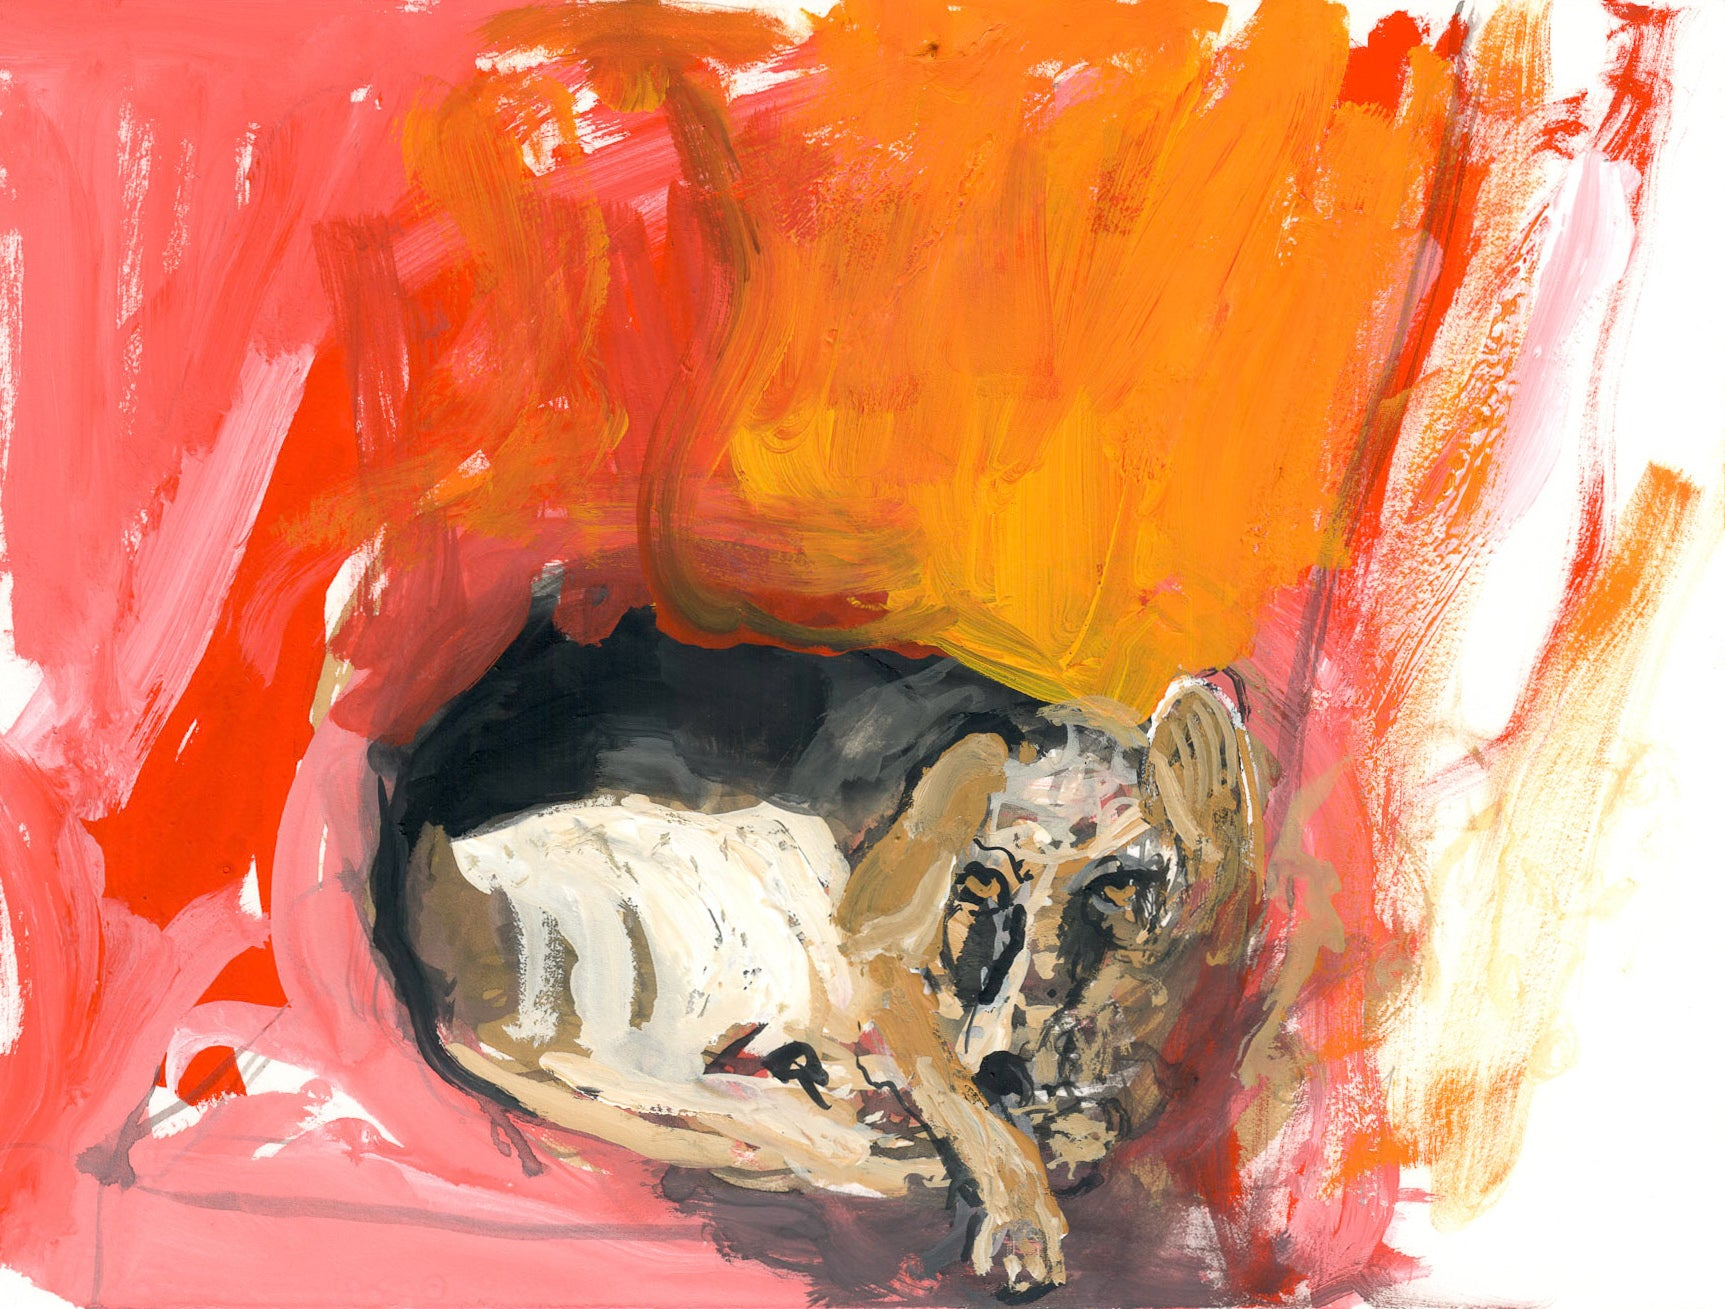 Sleepy Dog - Study 3 - Scary